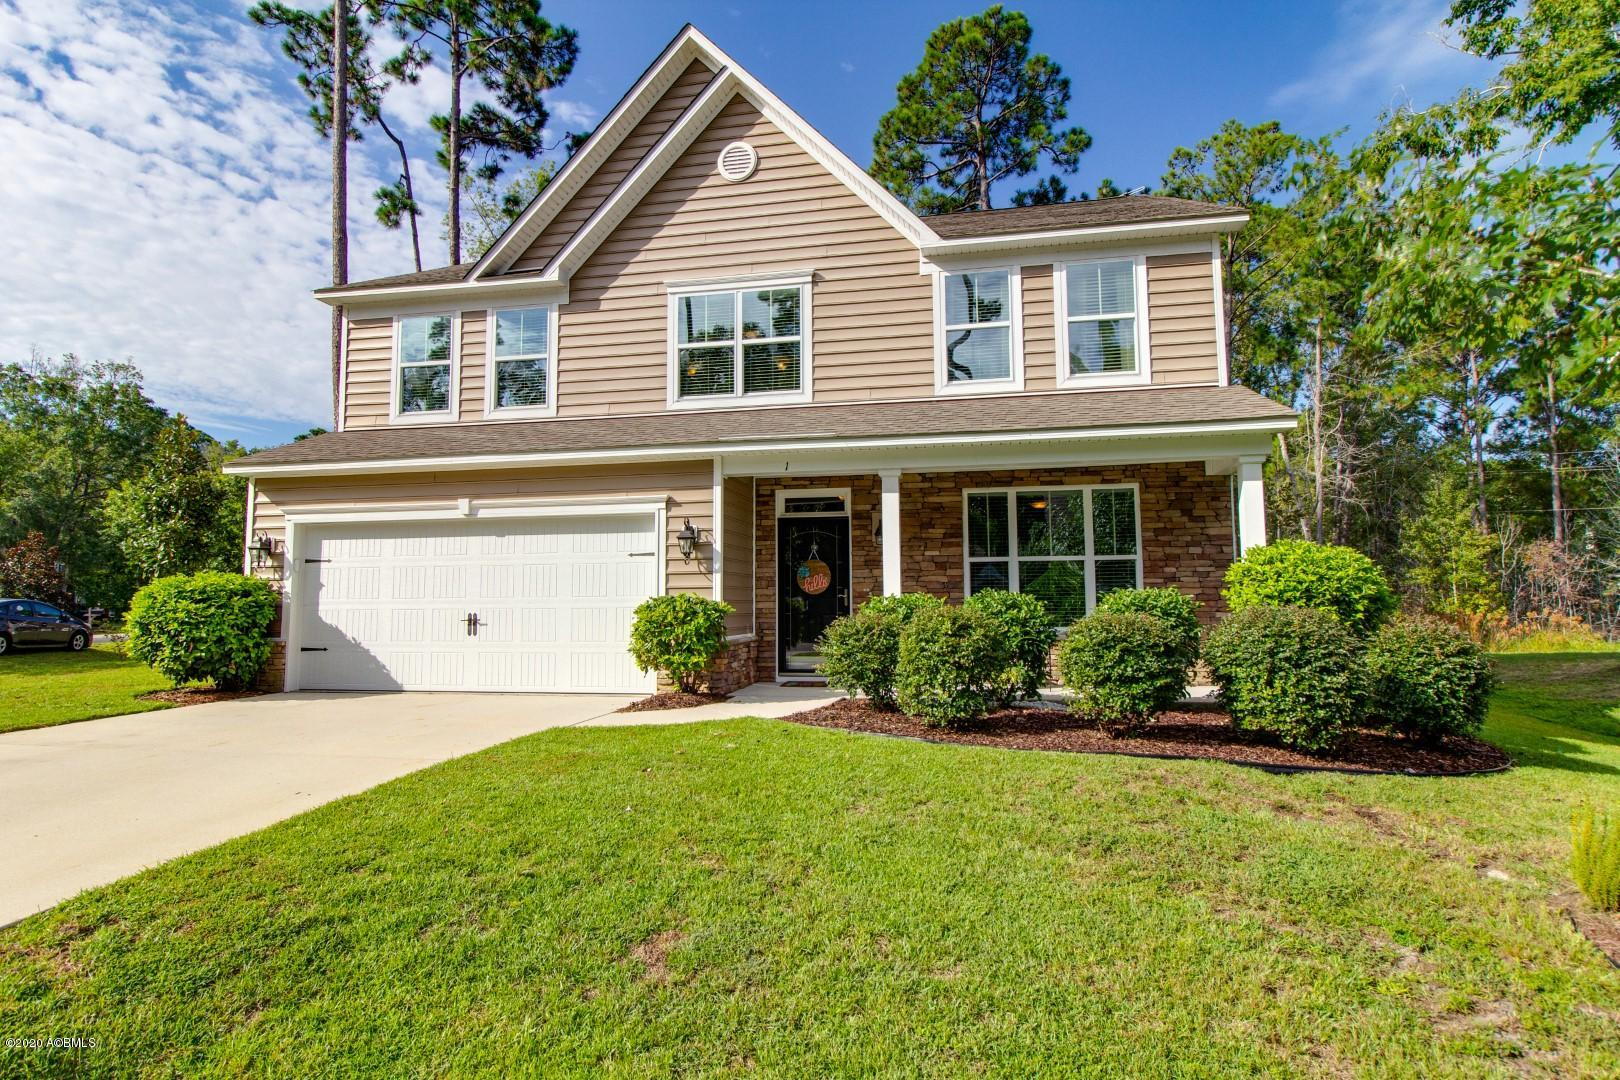 Photo of 1 Reid Court, Beaufort, SC 29907